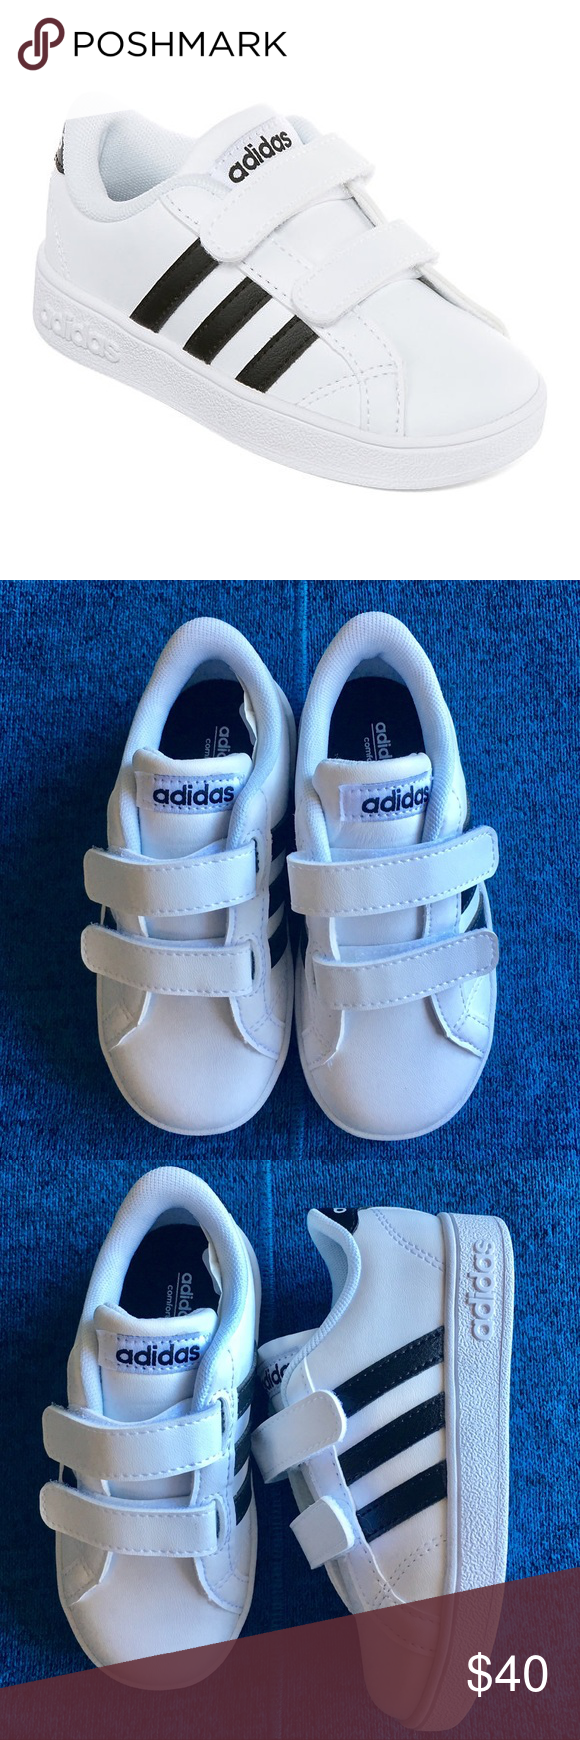 7916dafac4 32883 4f6d2; free shipping adidas kids adidas neo baseline unisex toddler  sneaker size 8 color black and white